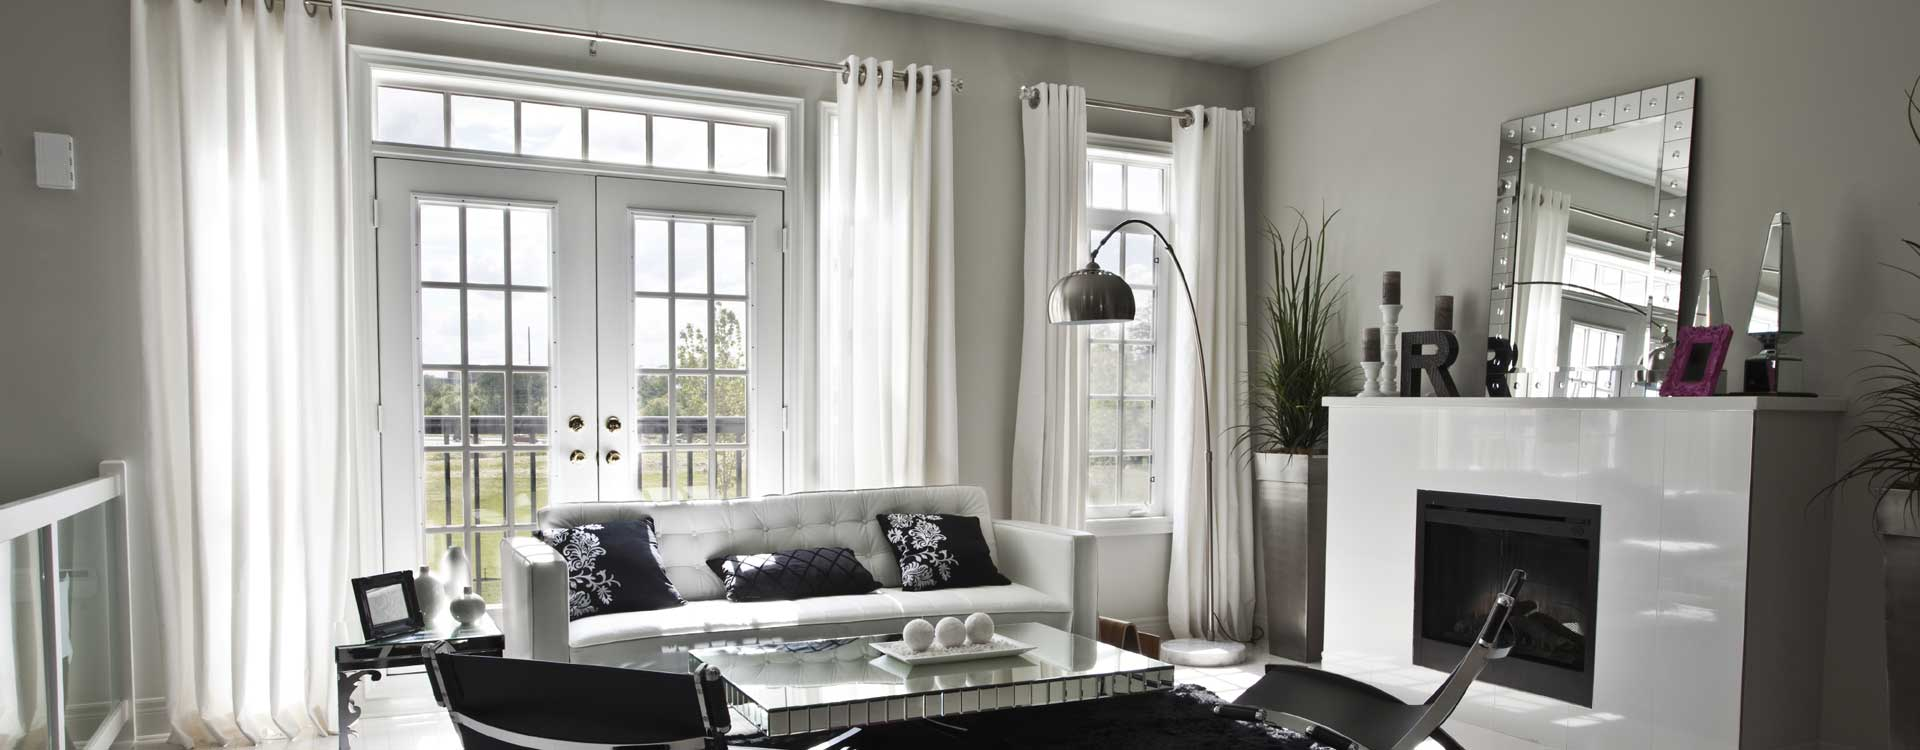 why regal drapes custom grommet draperies in less time and for less money often 20 60 less than other custom workrooms